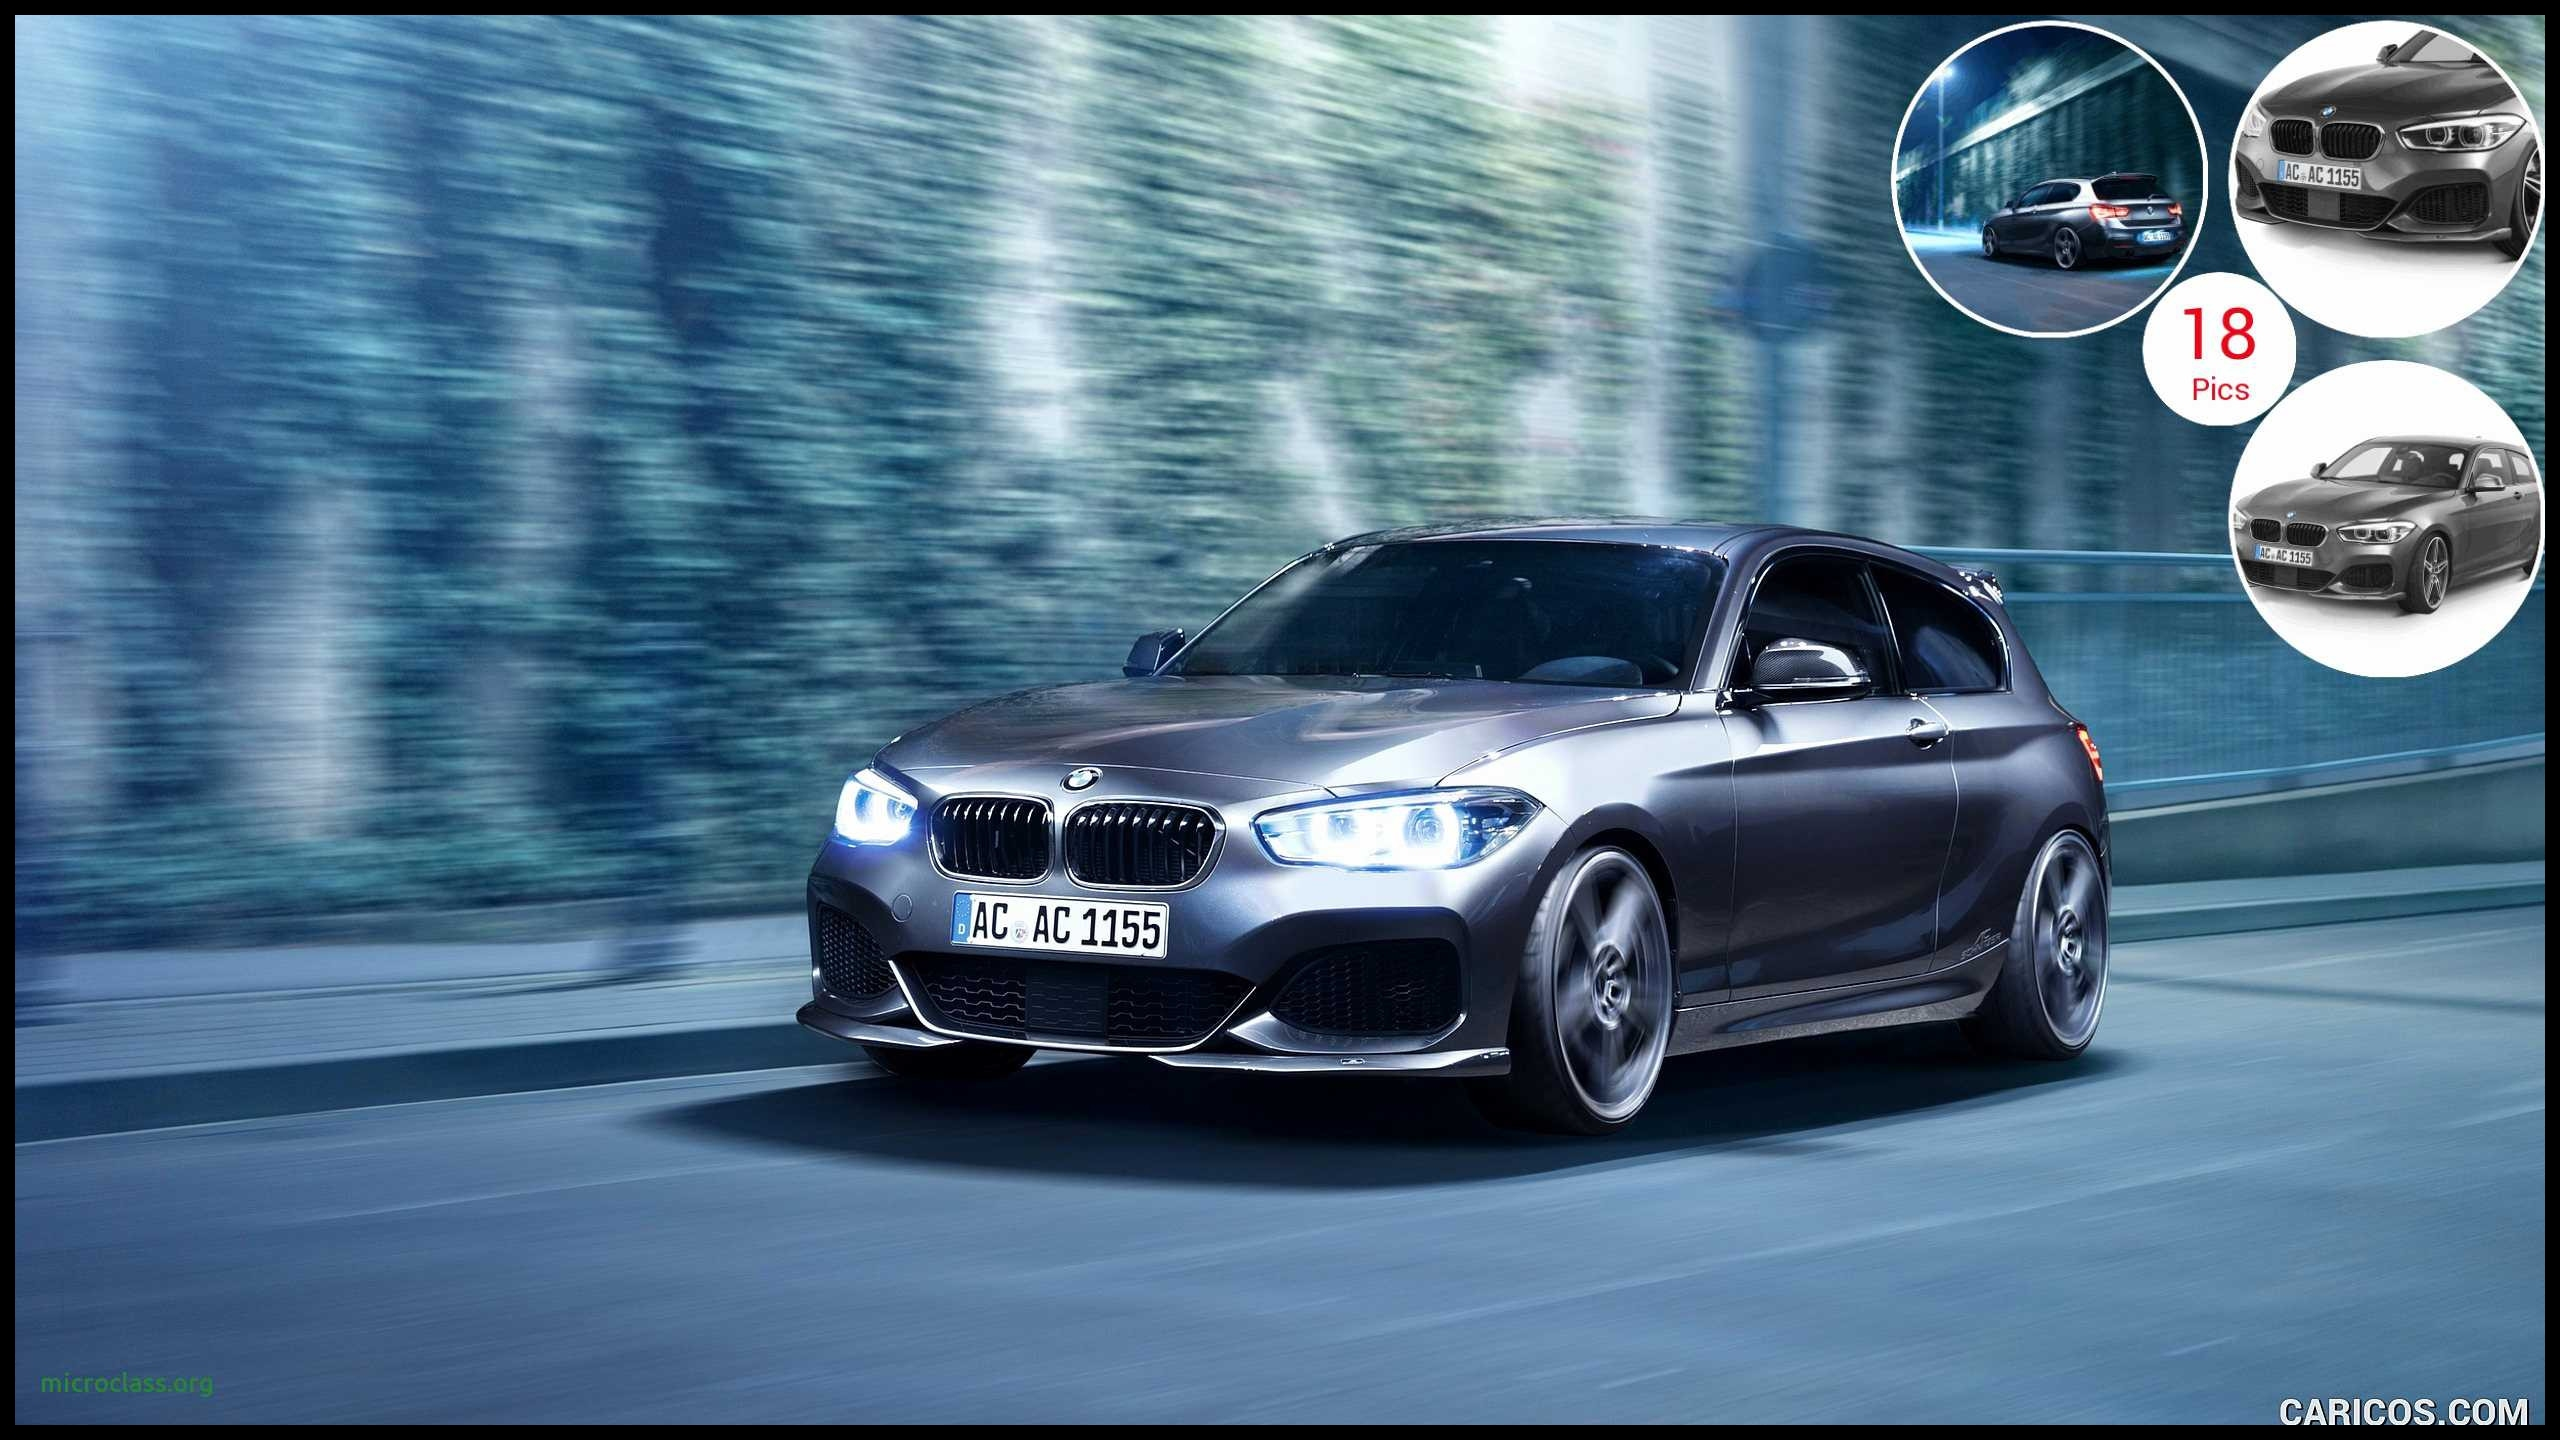 Hd Car Wallpapers Awesome 2016 Ac Schnitzer Acs1 5 0d Bmw 1 Series Hd Wallpaper Wallpaper Bmw 5 Series